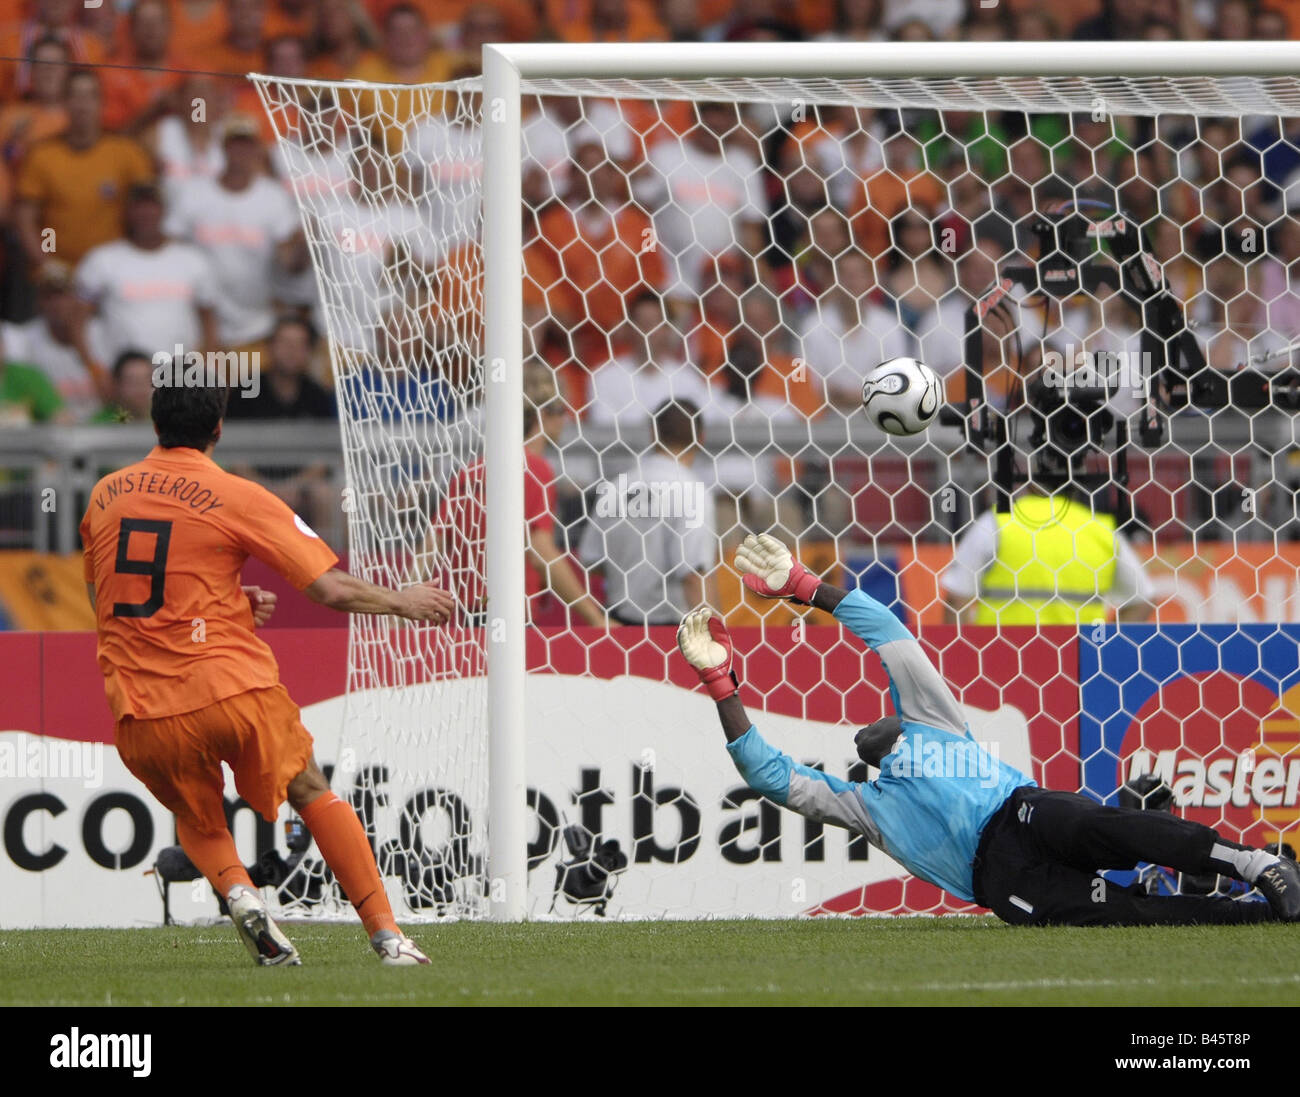 Sport, football, world championships, Netherlands versus Cote d'Ivoire, (2:1), Stuttgart, 16.6.2006, Additional - Stock Image